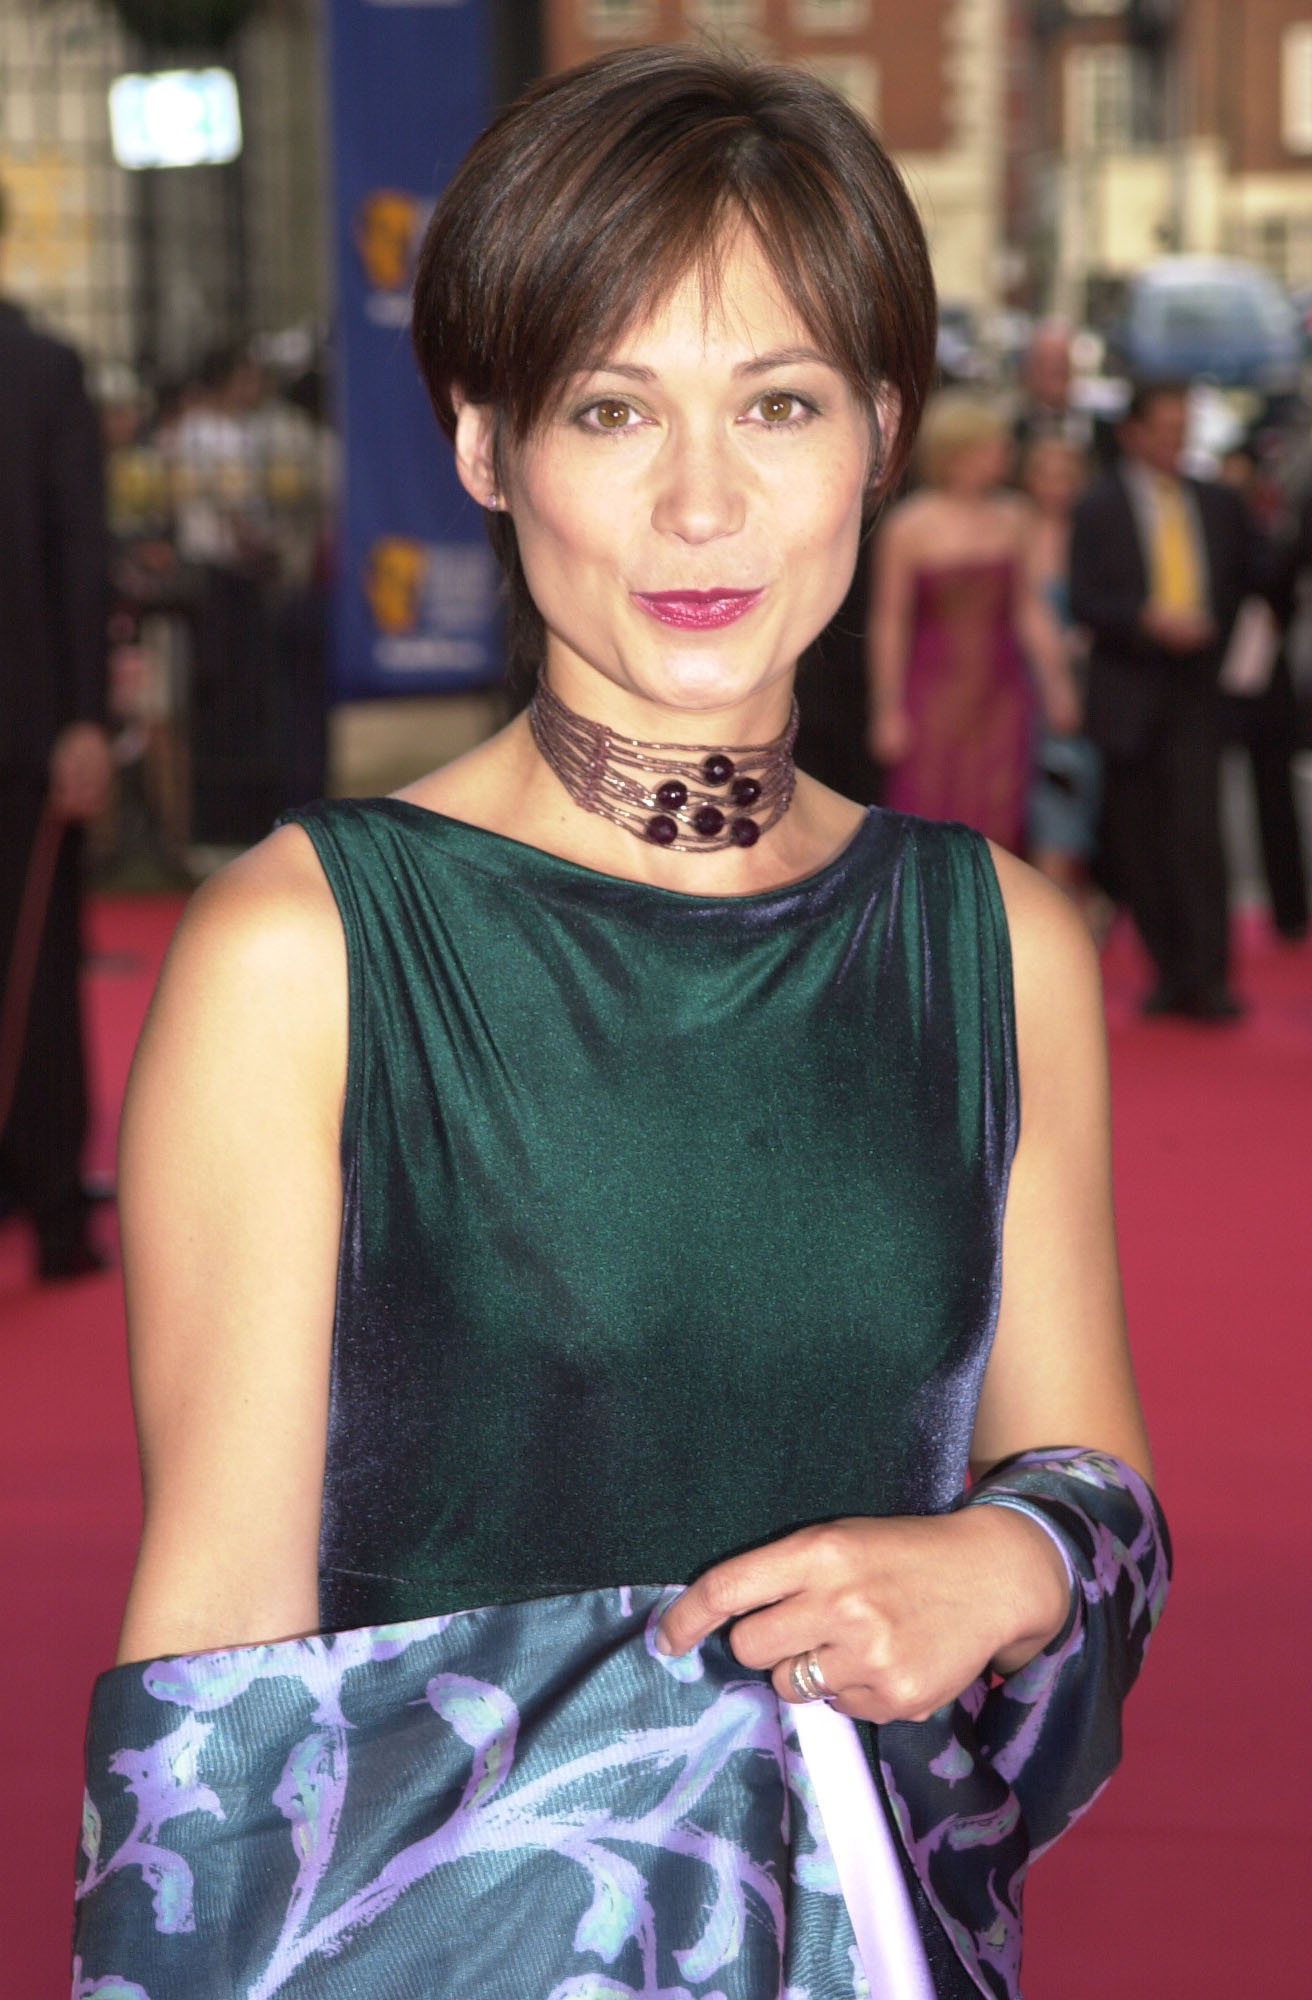 File photo dated 13/5/2001 of former Emmerdale star Leah Bracknell who, her manager said, has died three years after being diagnosed with stage 4 lung cancer.